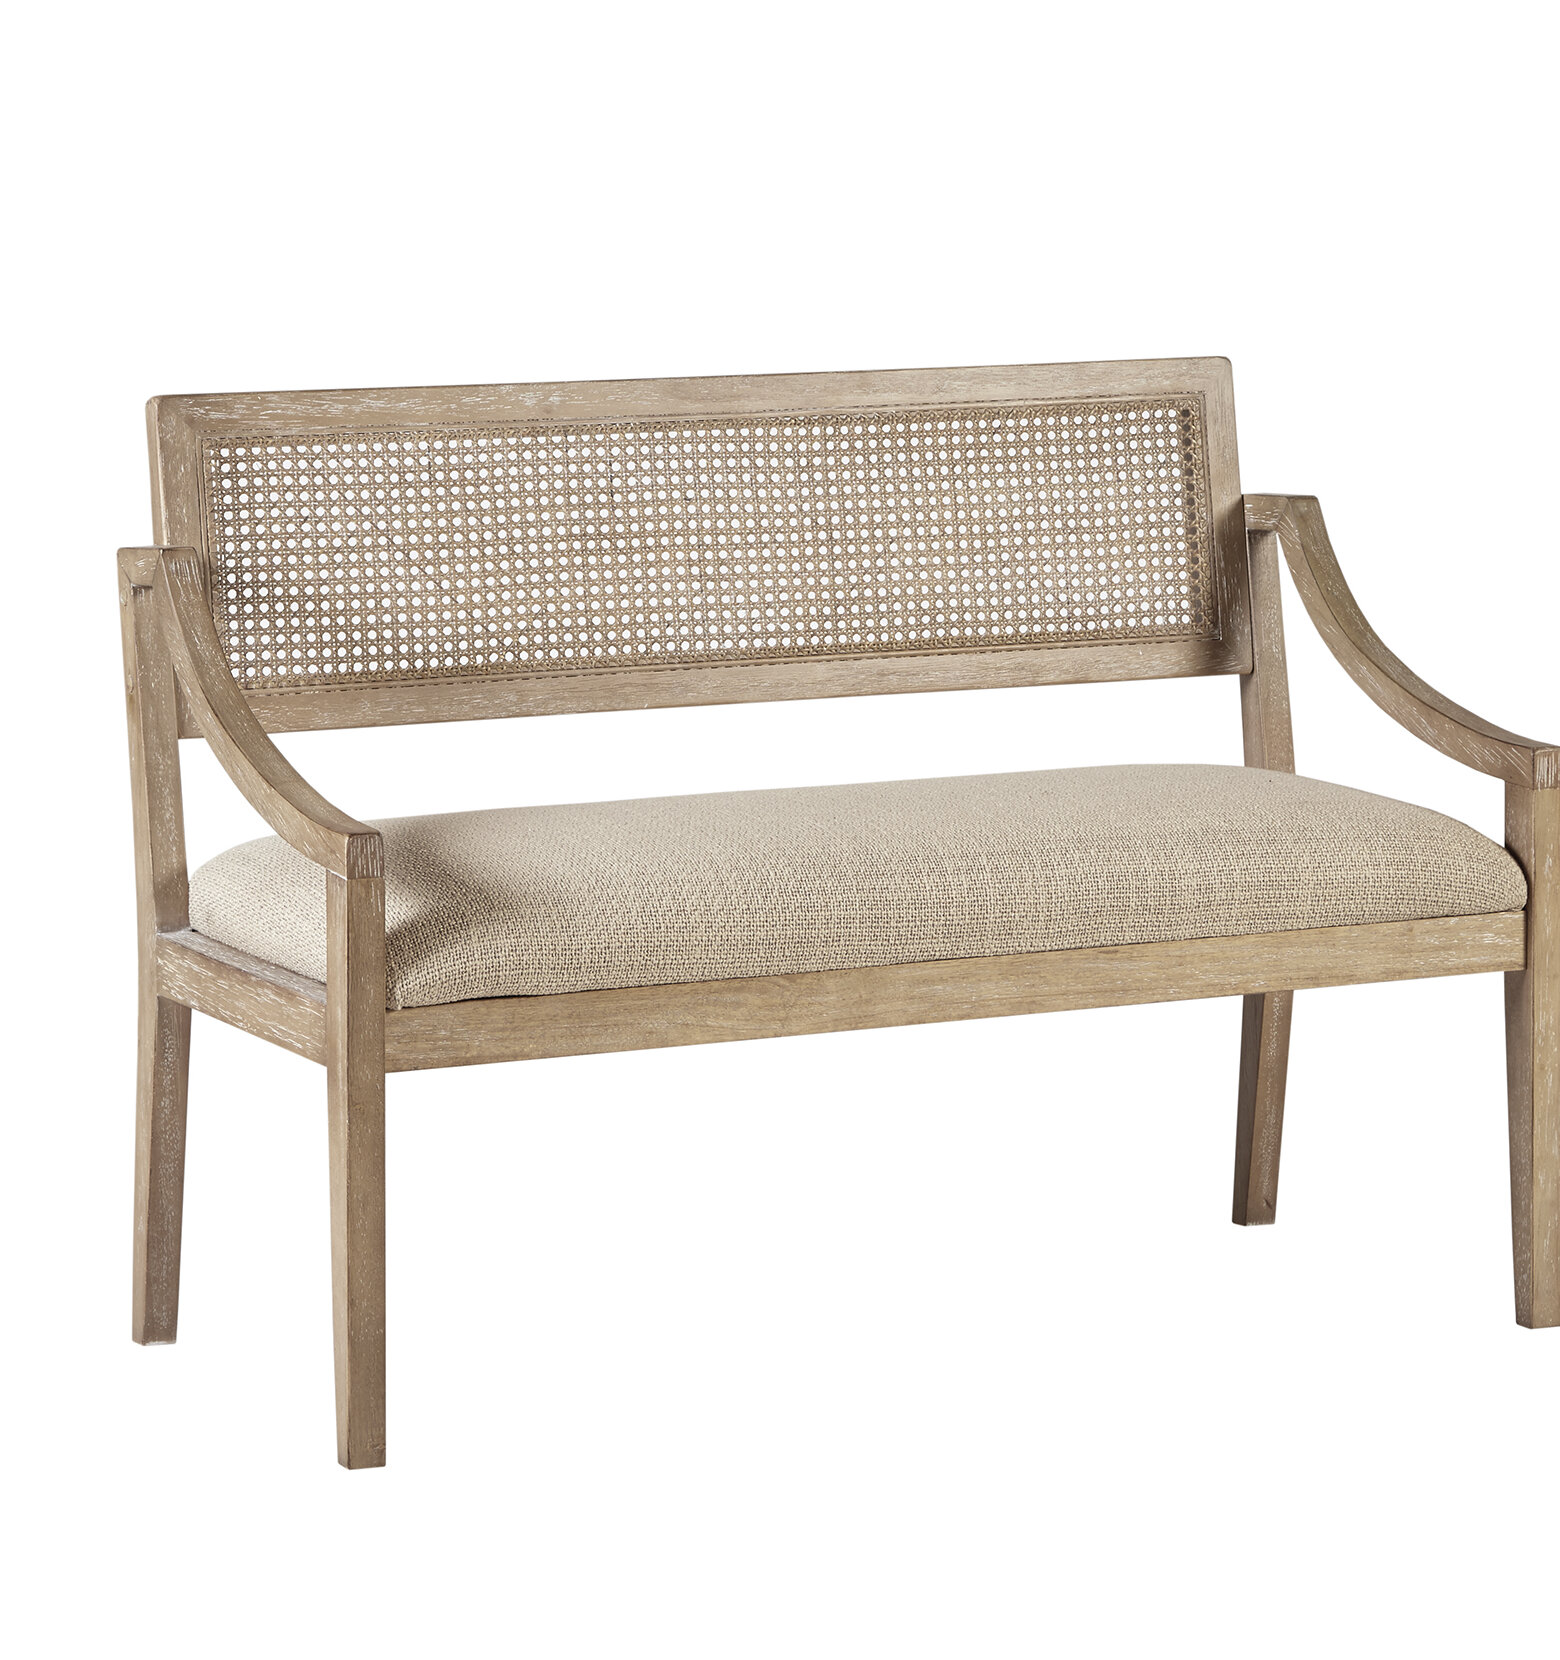 Wondrous Deleon Cane Arm Wood Bench Gmtry Best Dining Table And Chair Ideas Images Gmtryco